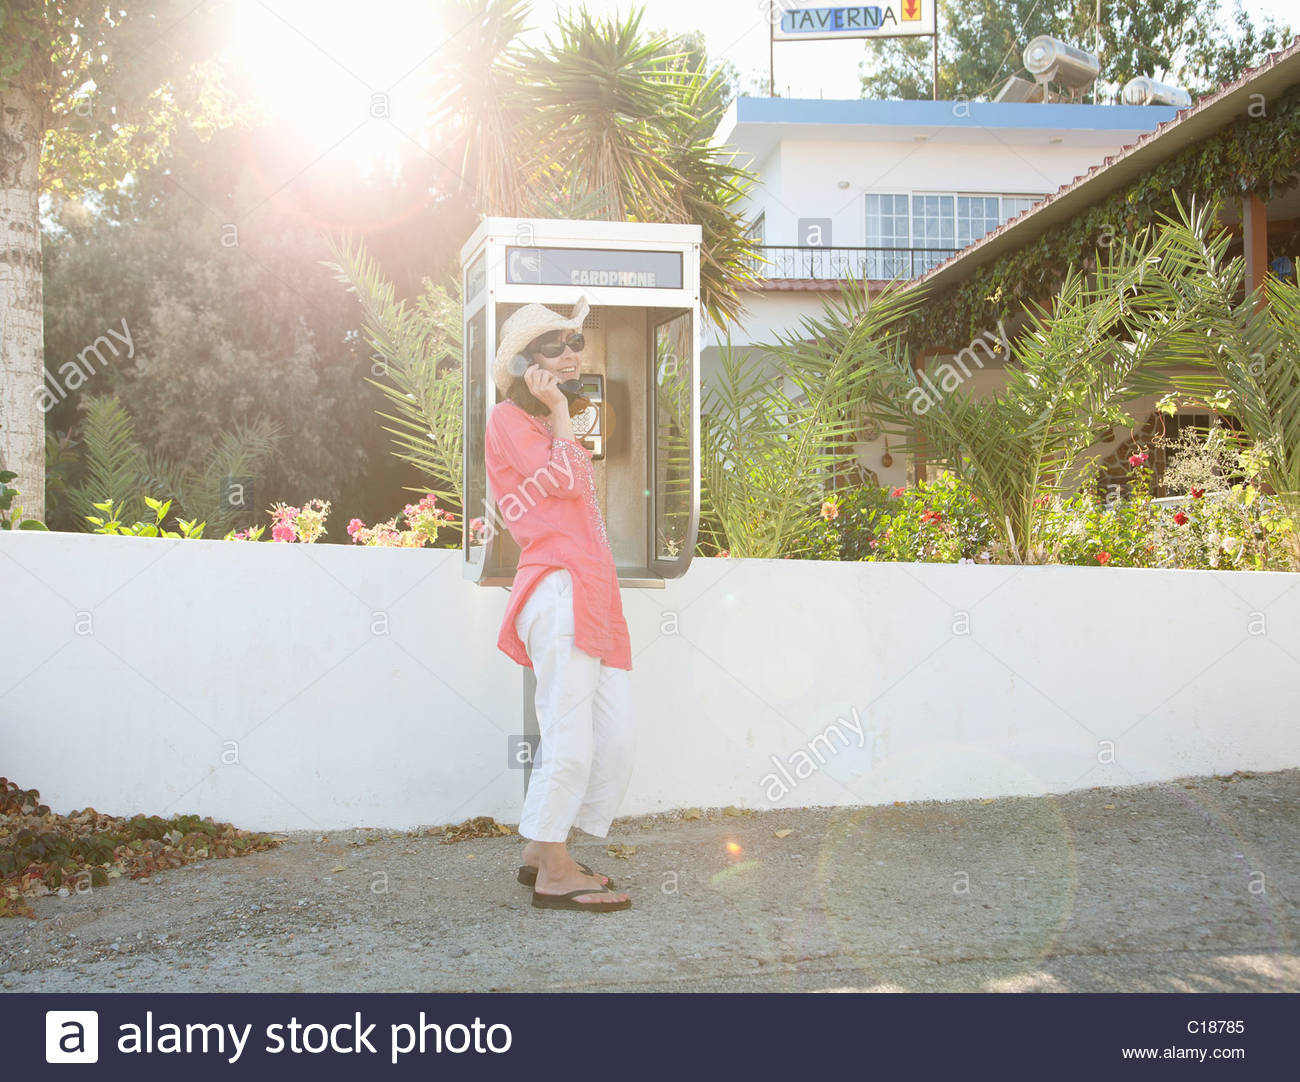 Woman on payphone in street - Stock Image